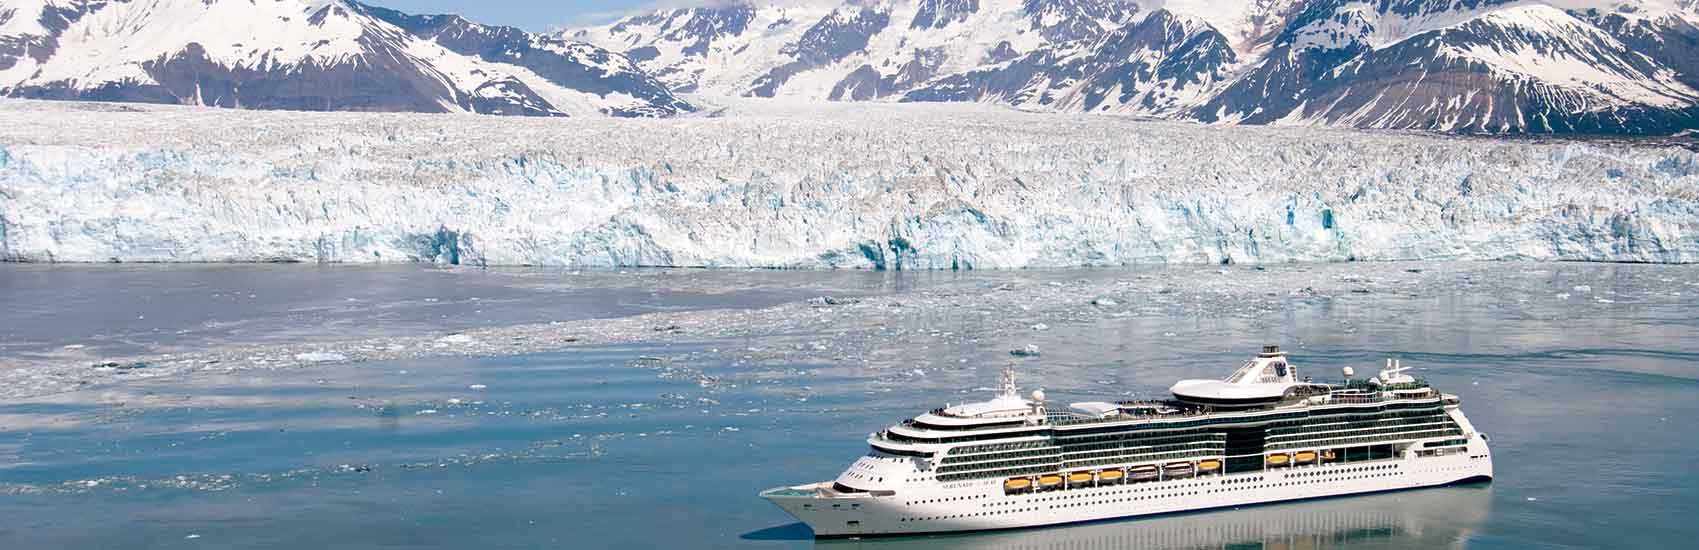 Direct Deal with Royal Caribbean 4